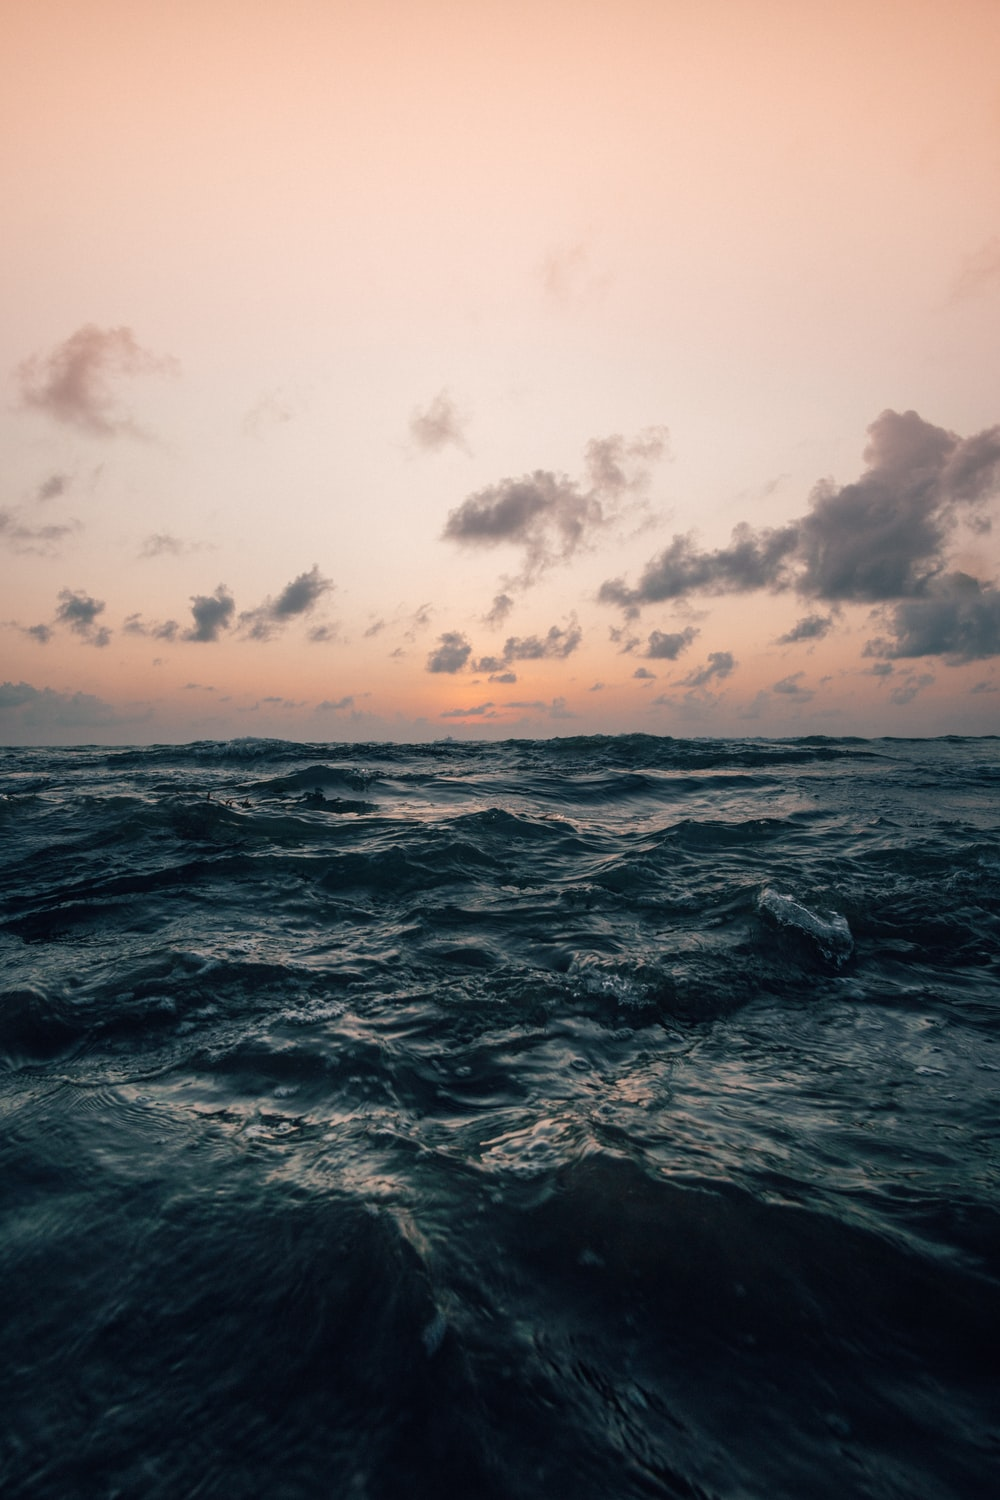 sea under cloudy sky in nature photography